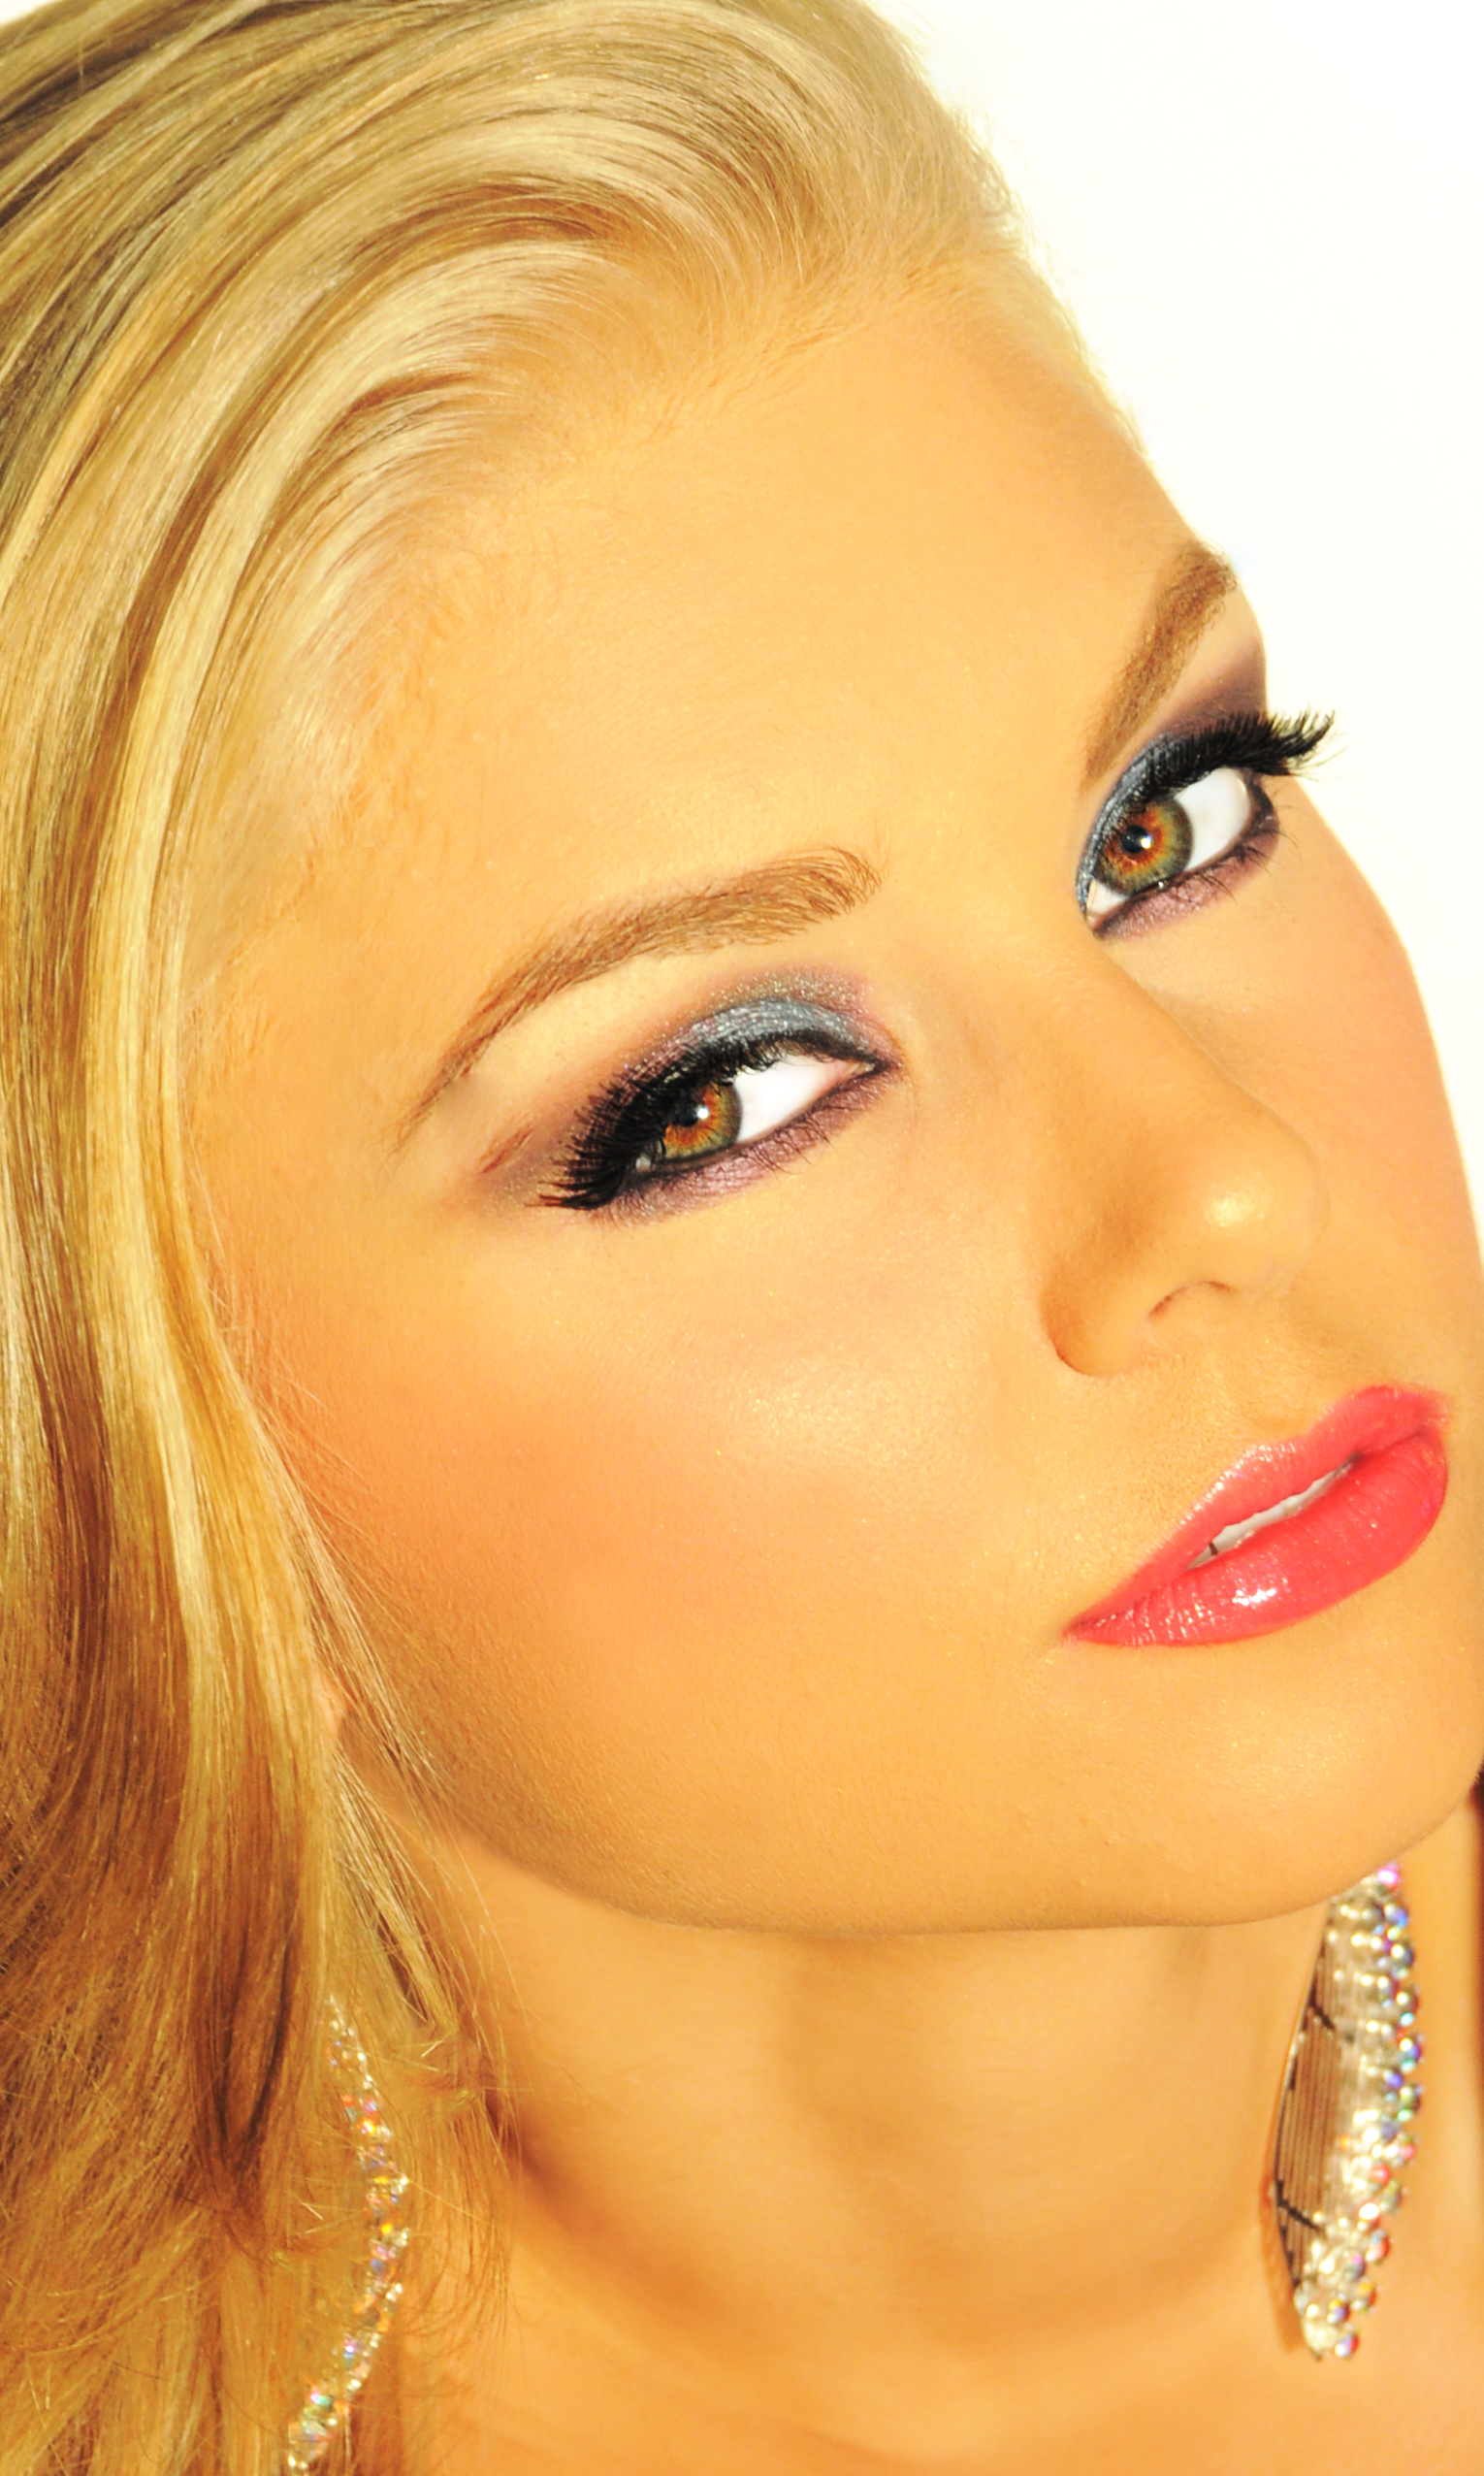 ELEGANT IVORY, MAUVE AND BLACK LINER, WITH  PINK LIPS LOOKS GREAT ON ALI.